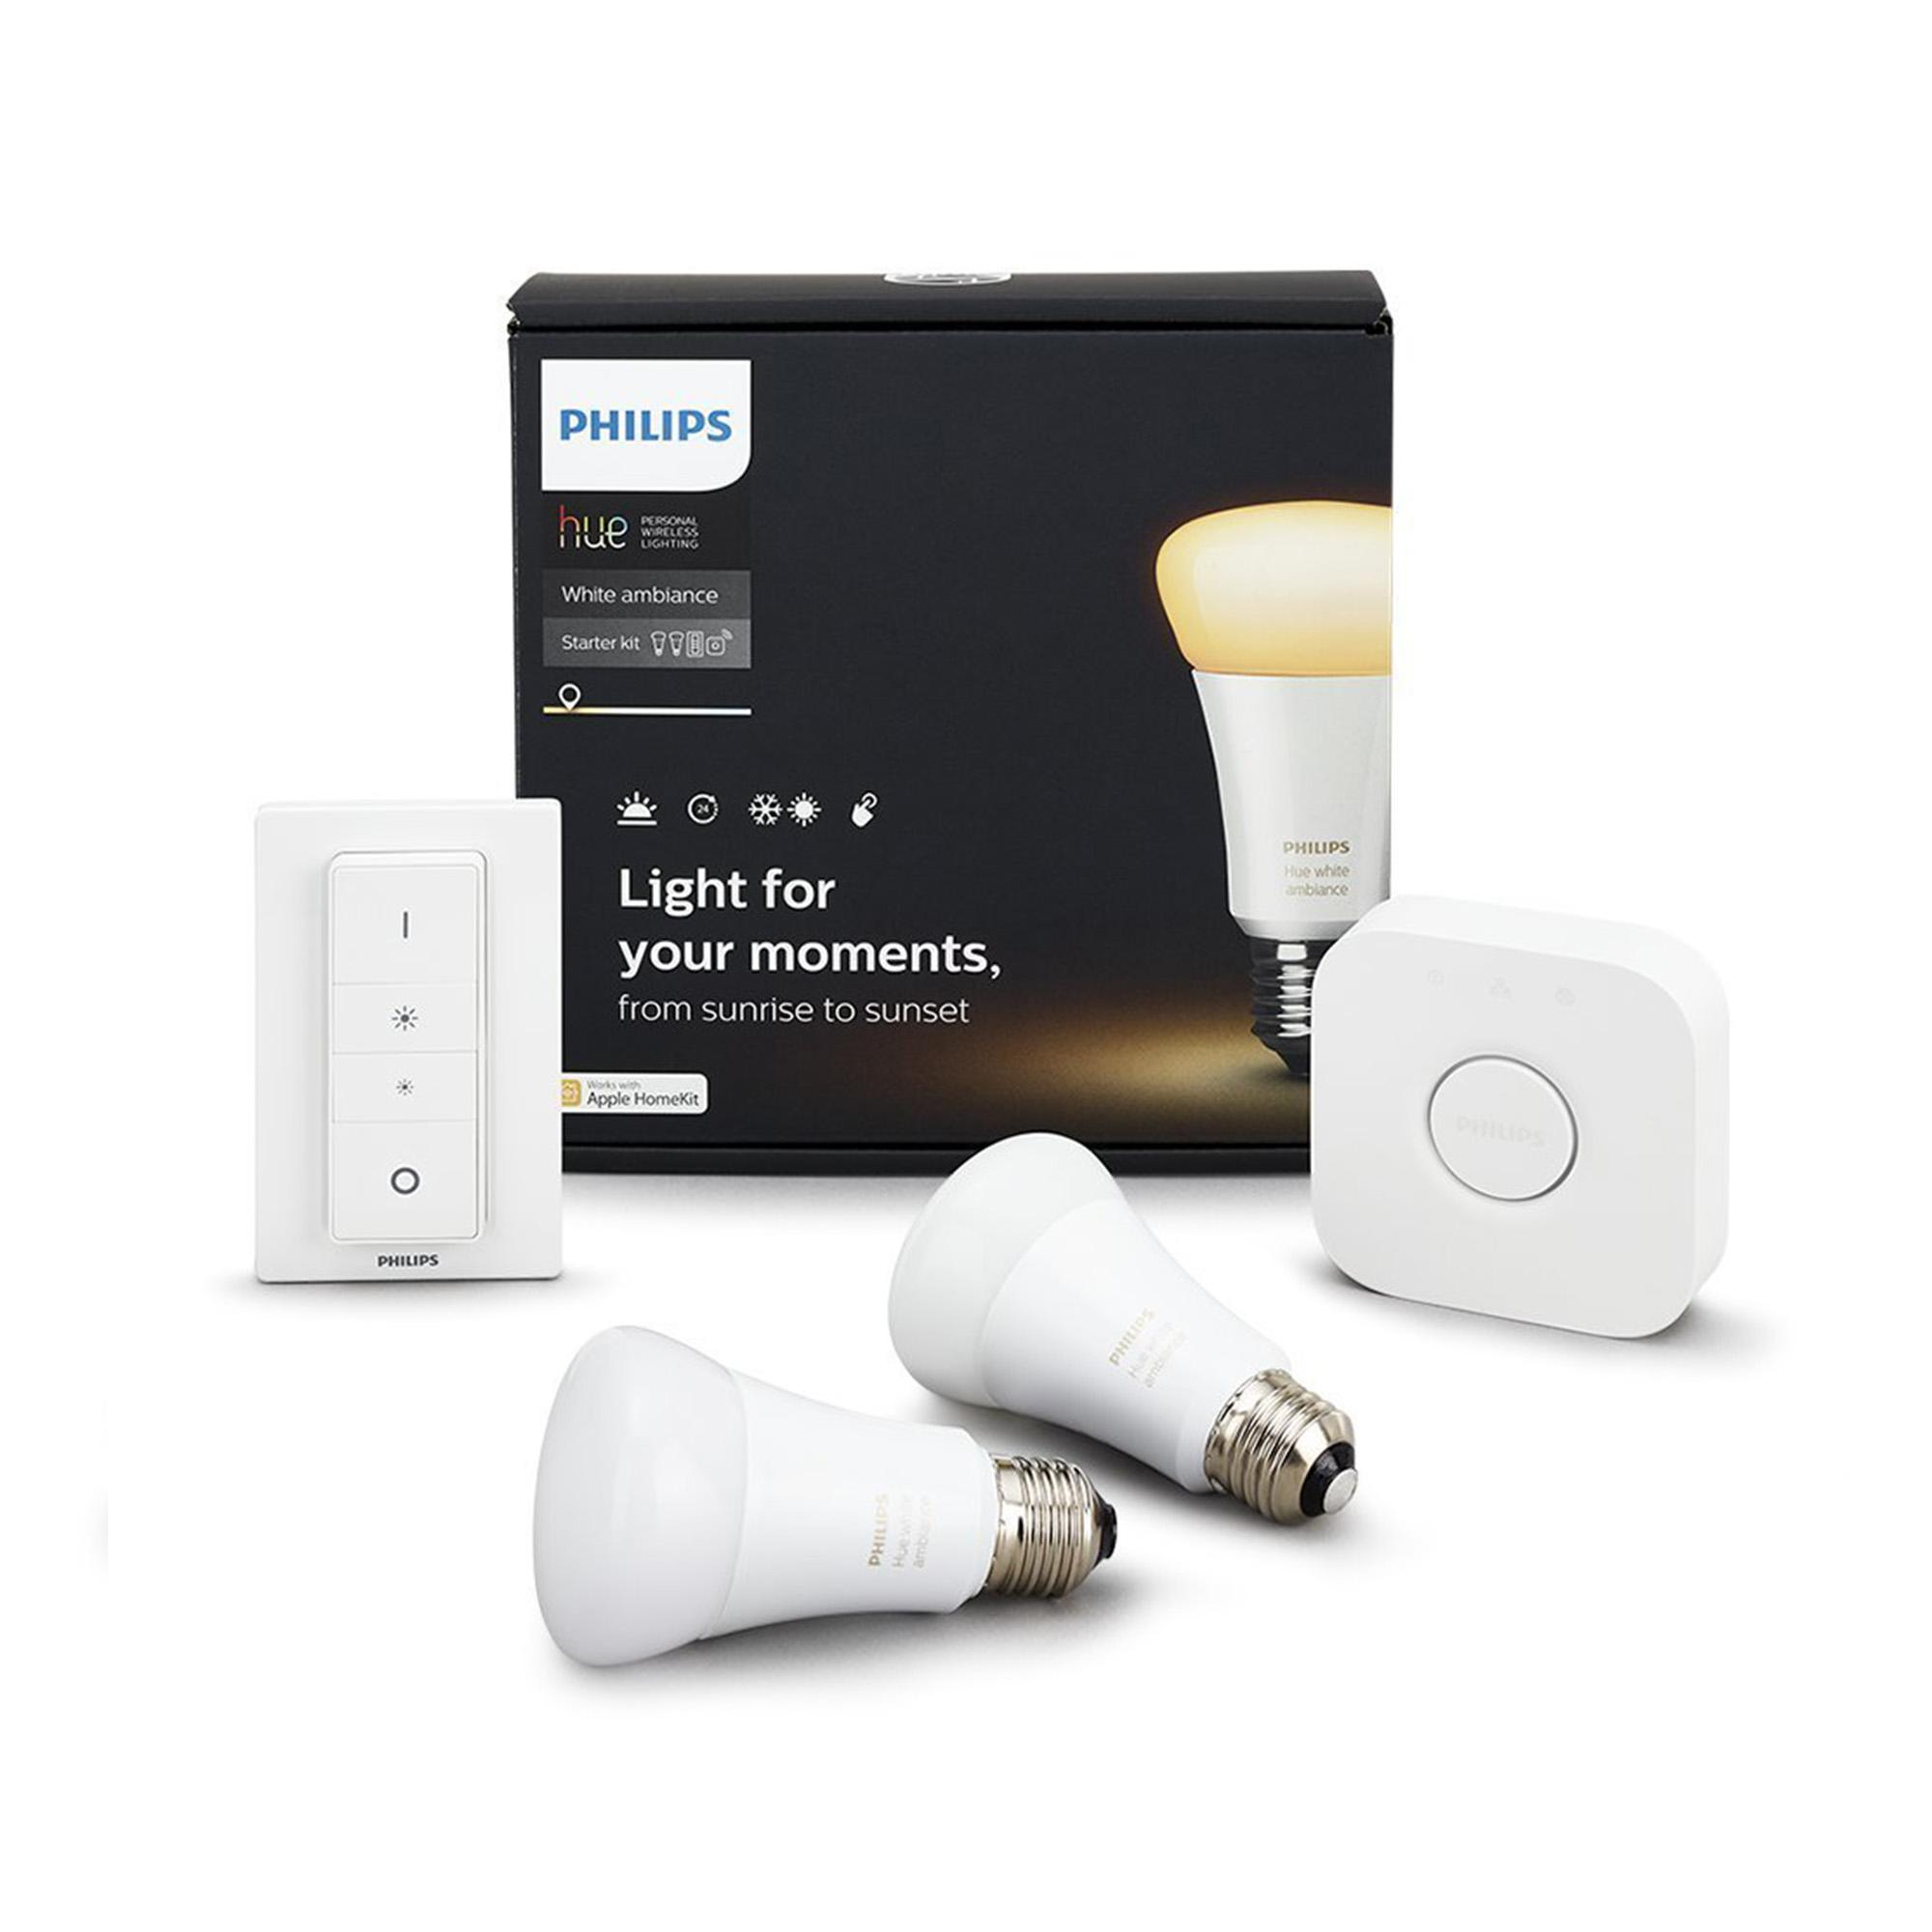 Hue G10 Philips Hue White Ambiance Starter Kit 1x Bridge 2x White Ambiance Bulbs 1x Dimmer Switch